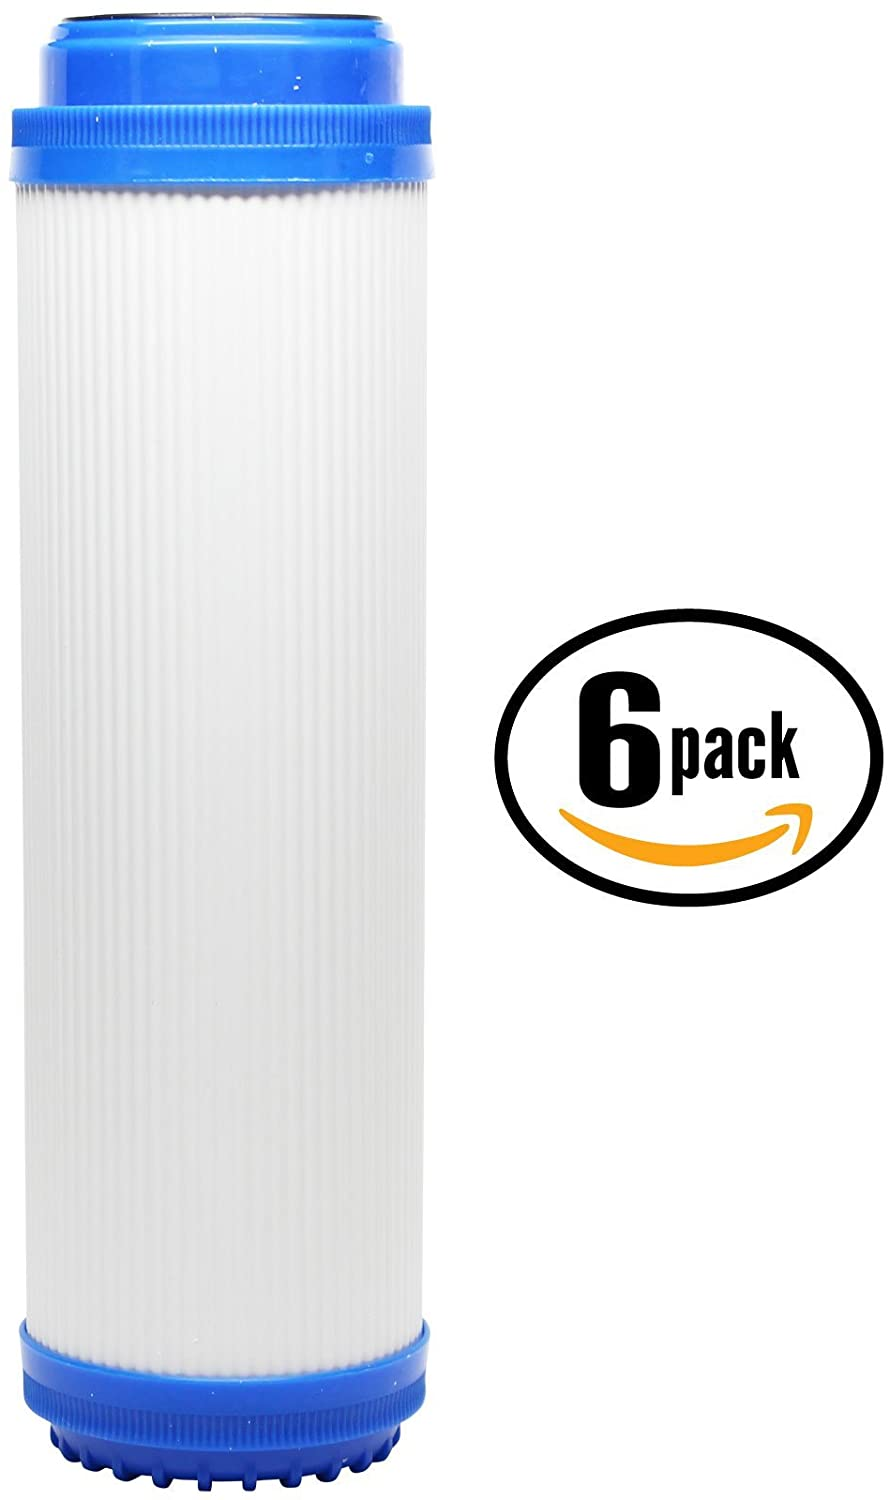 6-Pack Replacement for Isopure CT-DBL2 Granular Activated Carbon Filter - Universal 10-inch Cartridge Compatible with Isopure Water (CT-DBL2) Double Stage Counter-Top Water Filter - Denali Pure Brand